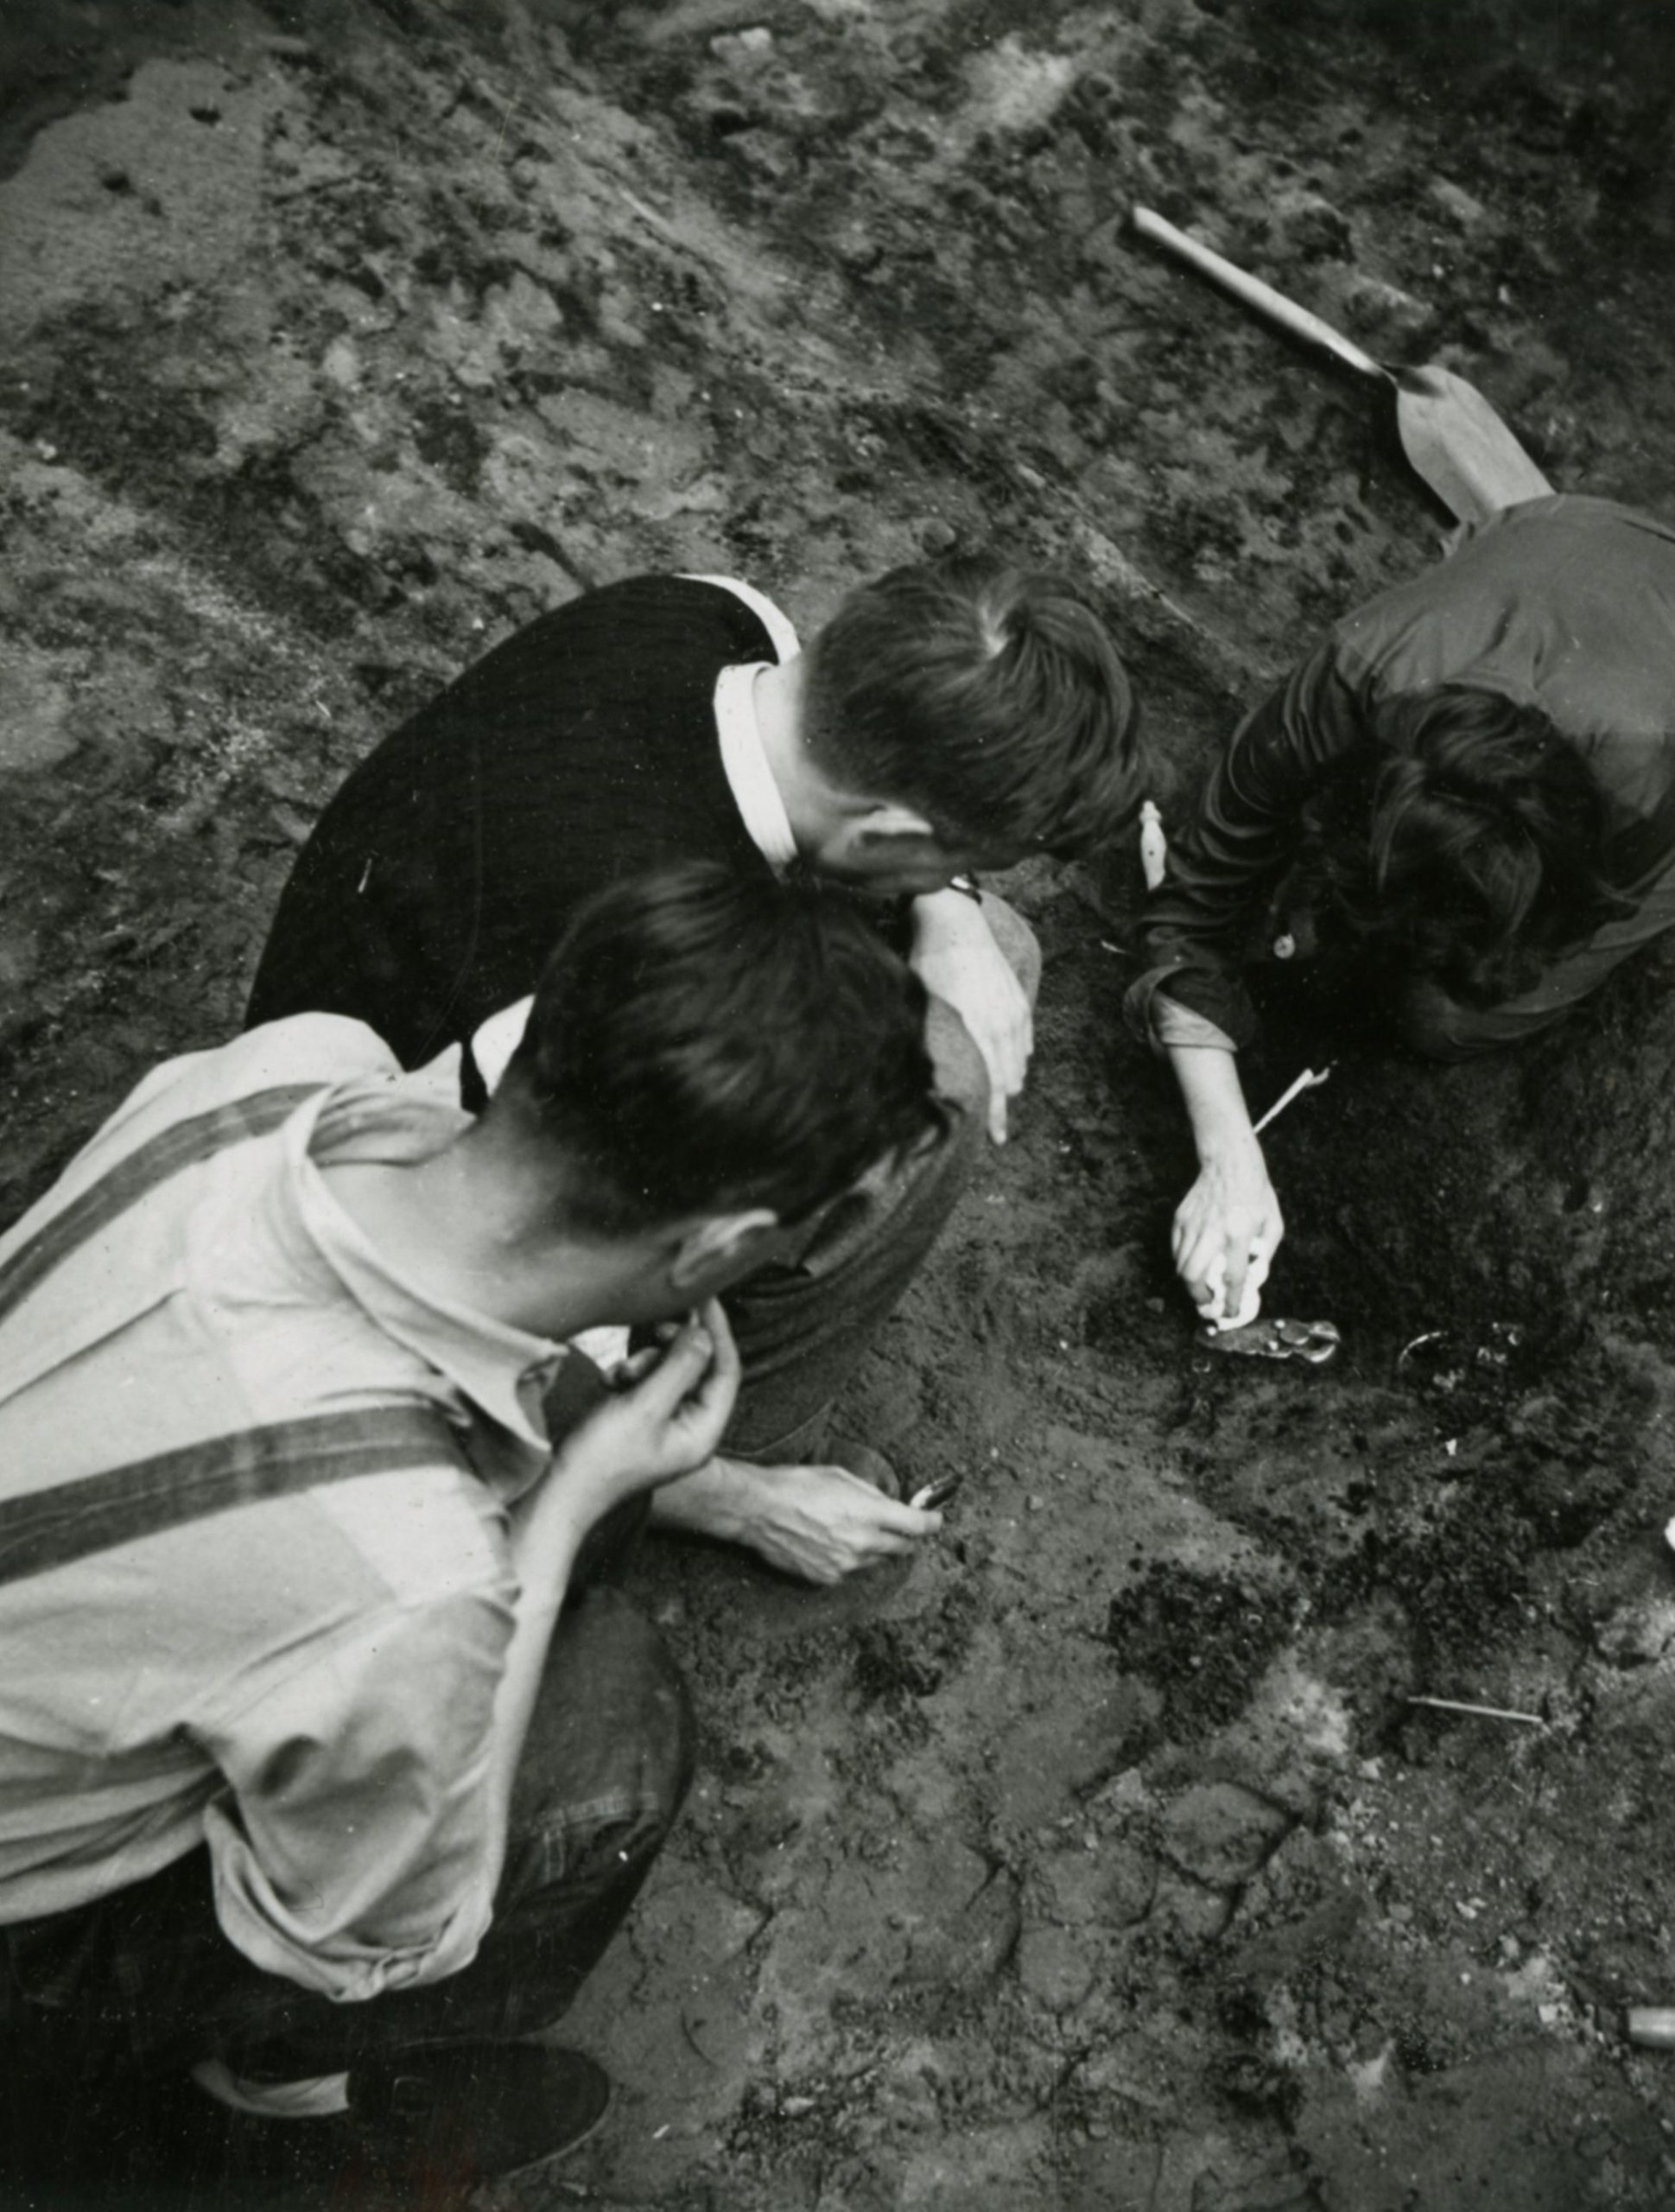 View from above of three people excavating in a trench. We see the backs of their heads as they work. One of them is digging around a gold object.